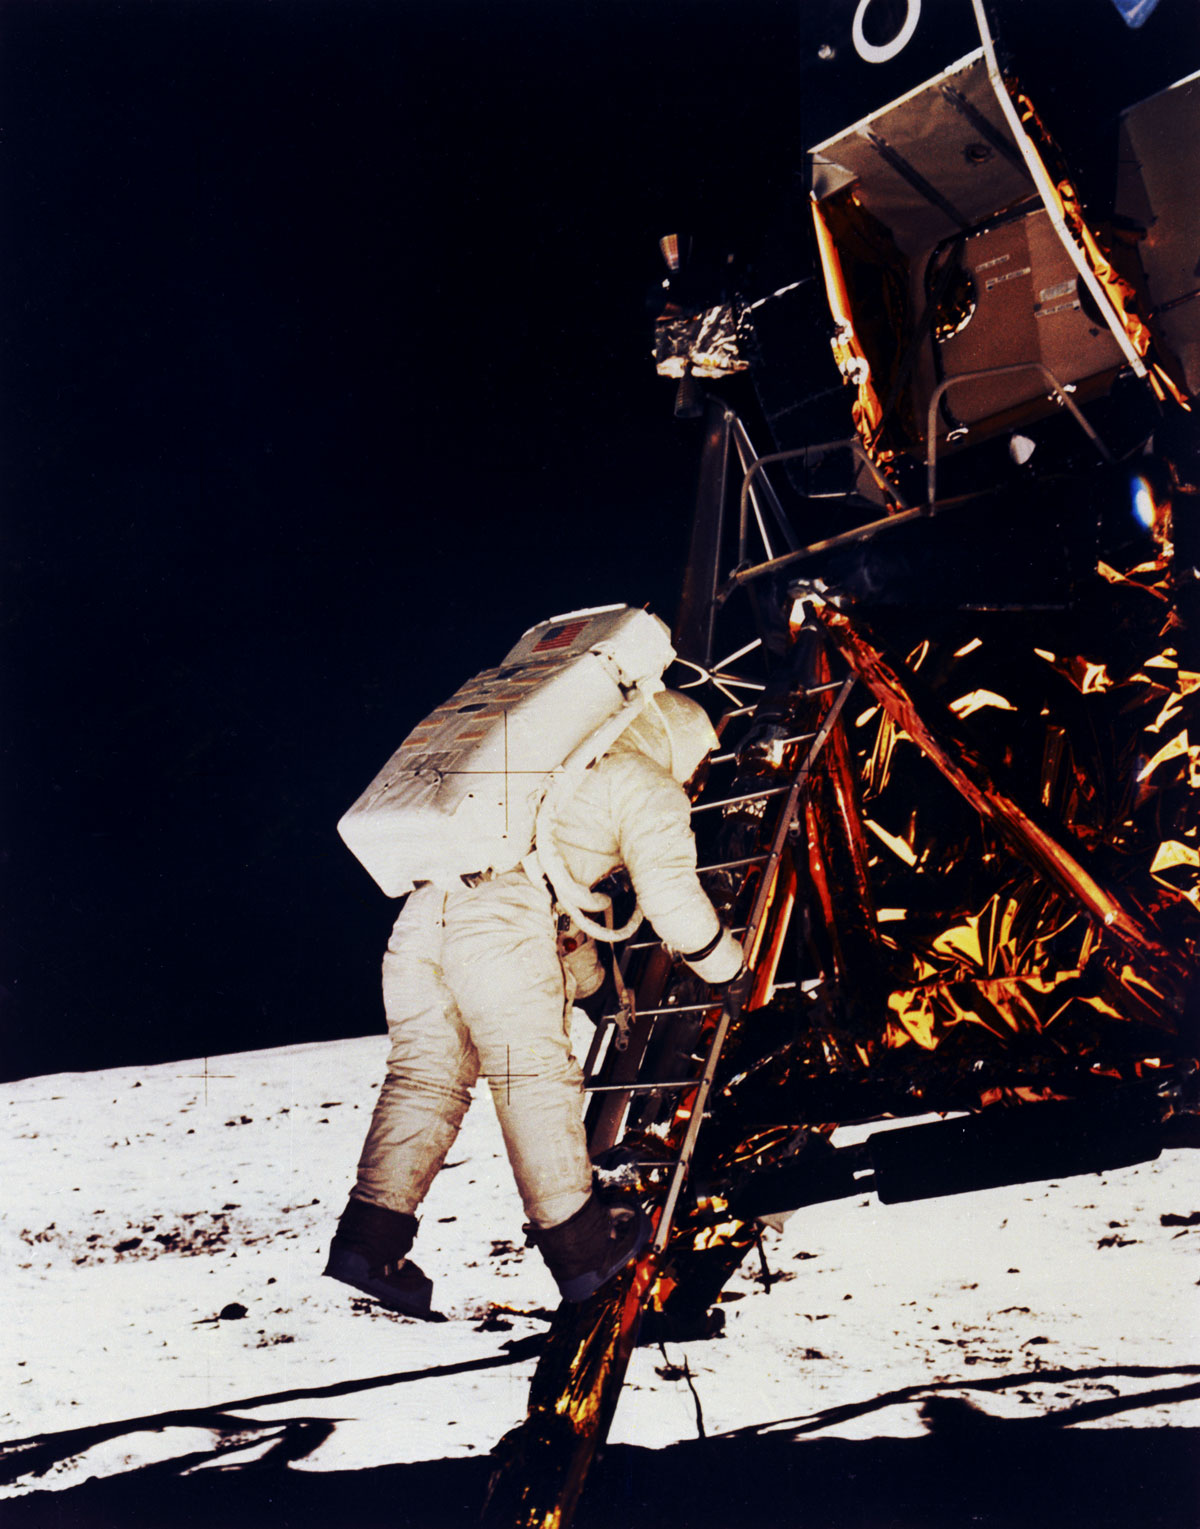 the importance of exploration continued buzz aldrin on ladder to lunar surface